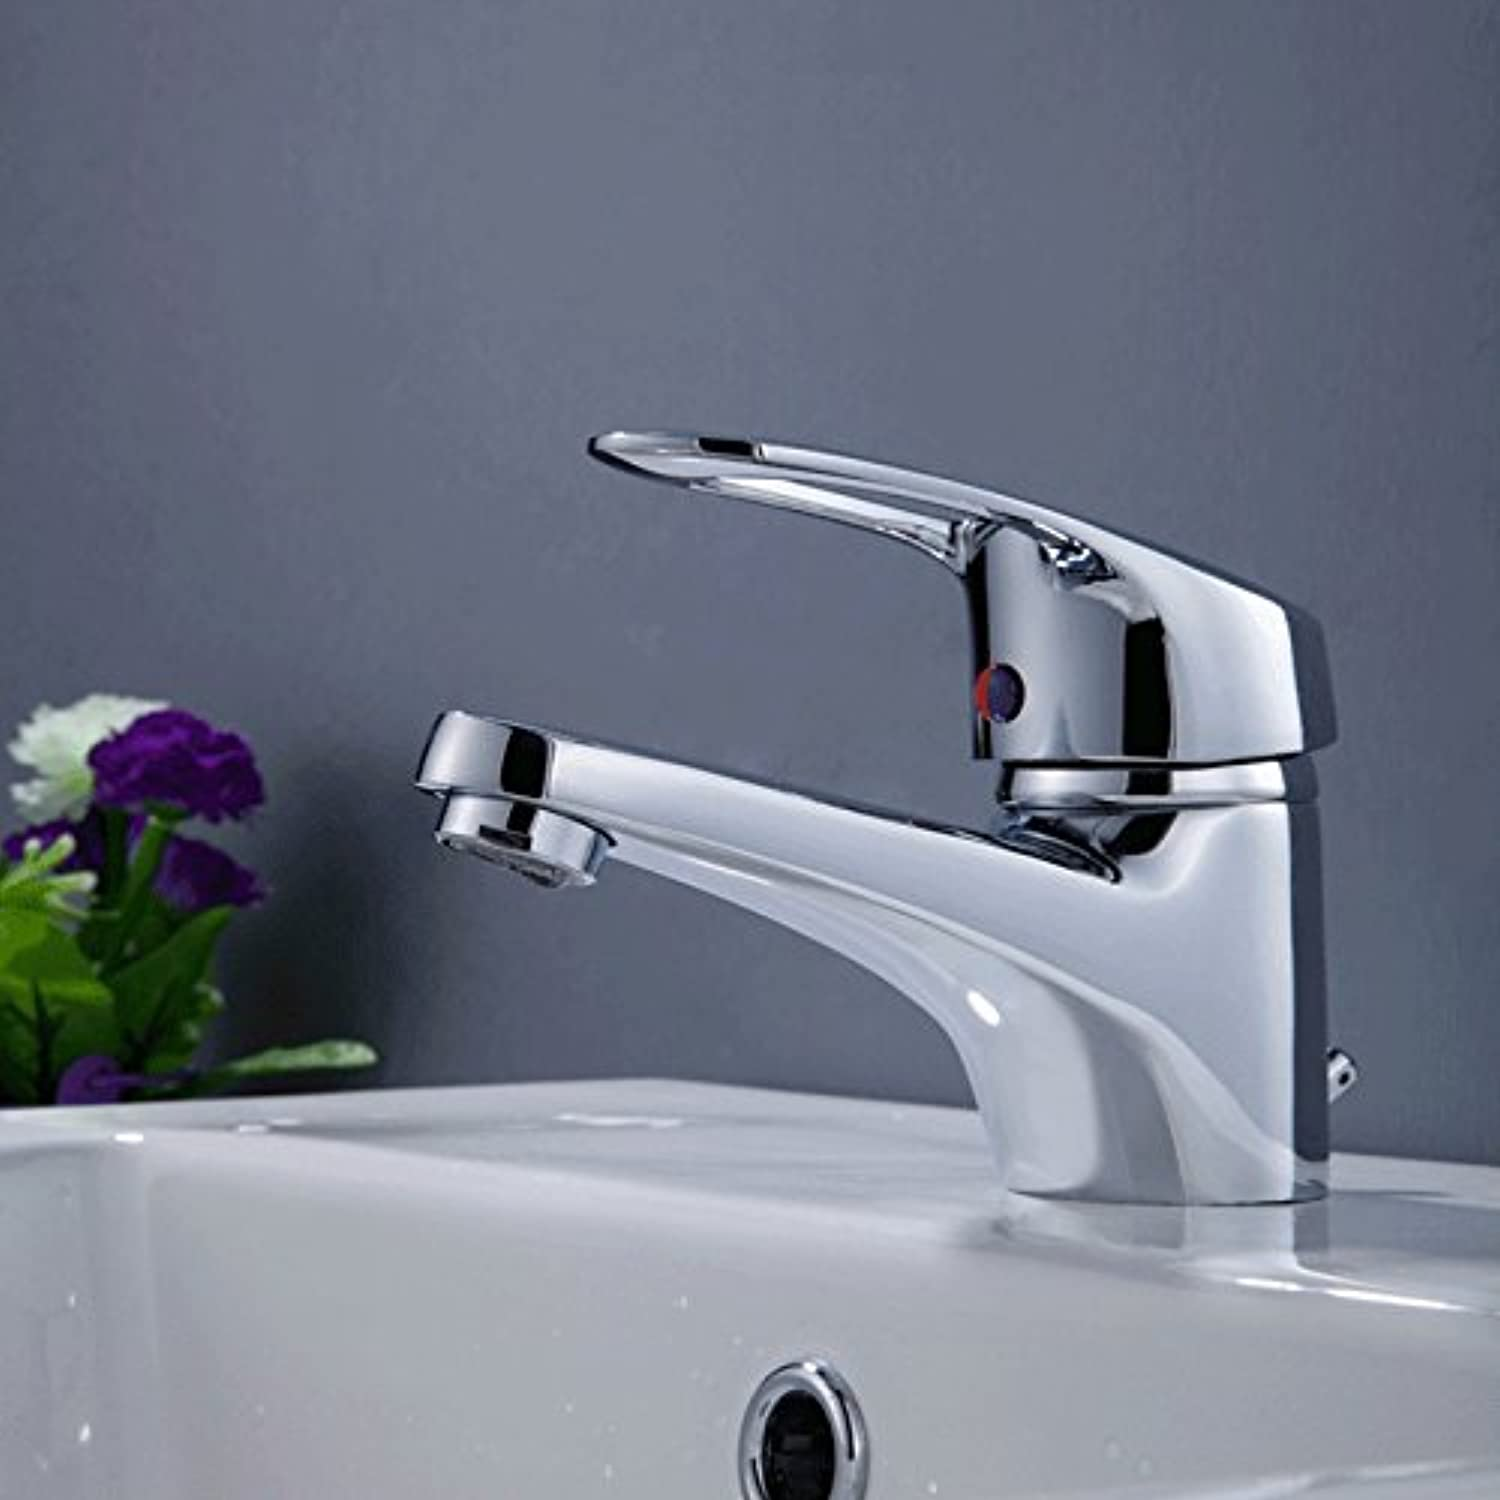 Faucet Copper Single Hot Water Pot greenical Quick Open Faucet